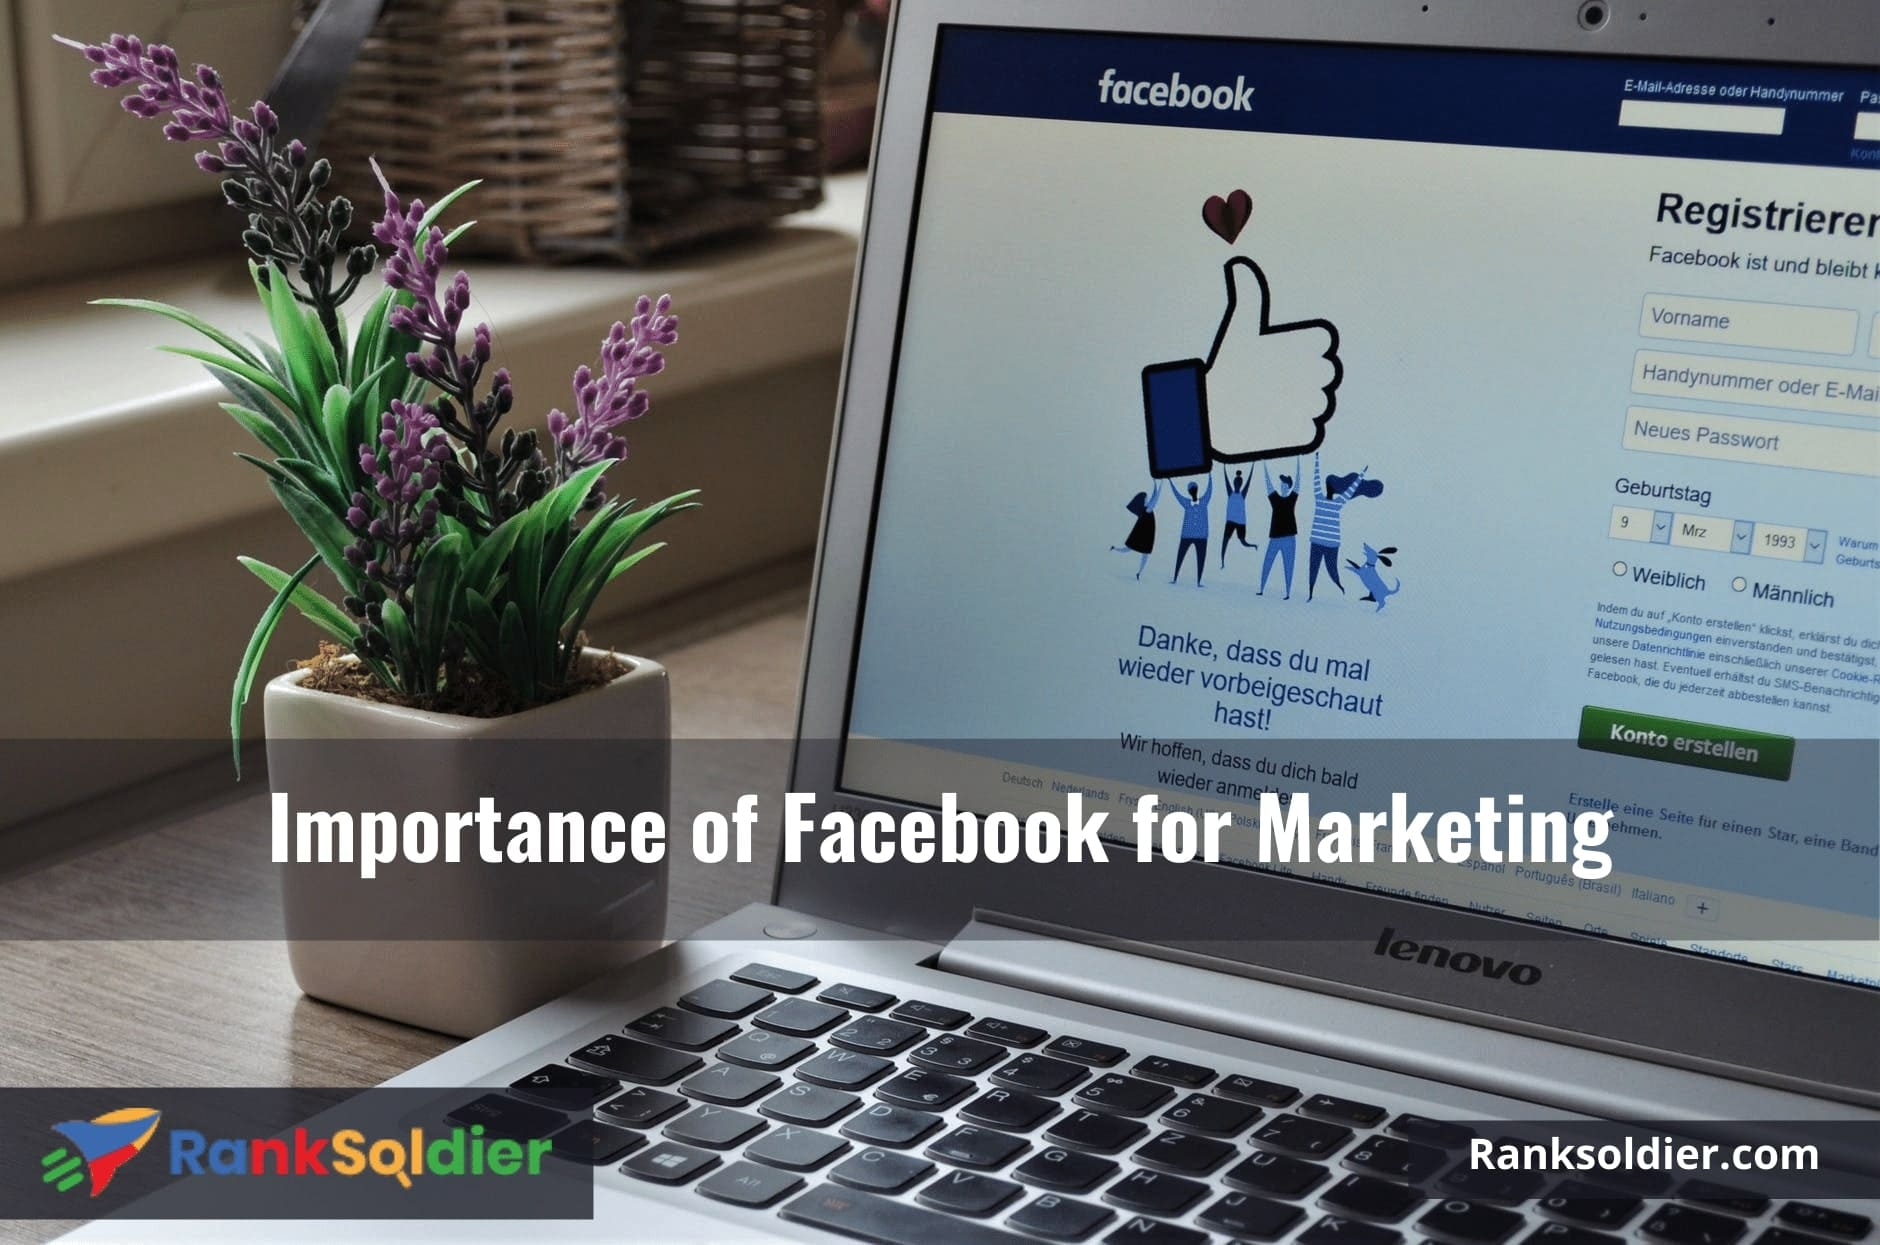 Importance of Facebook for Marketing